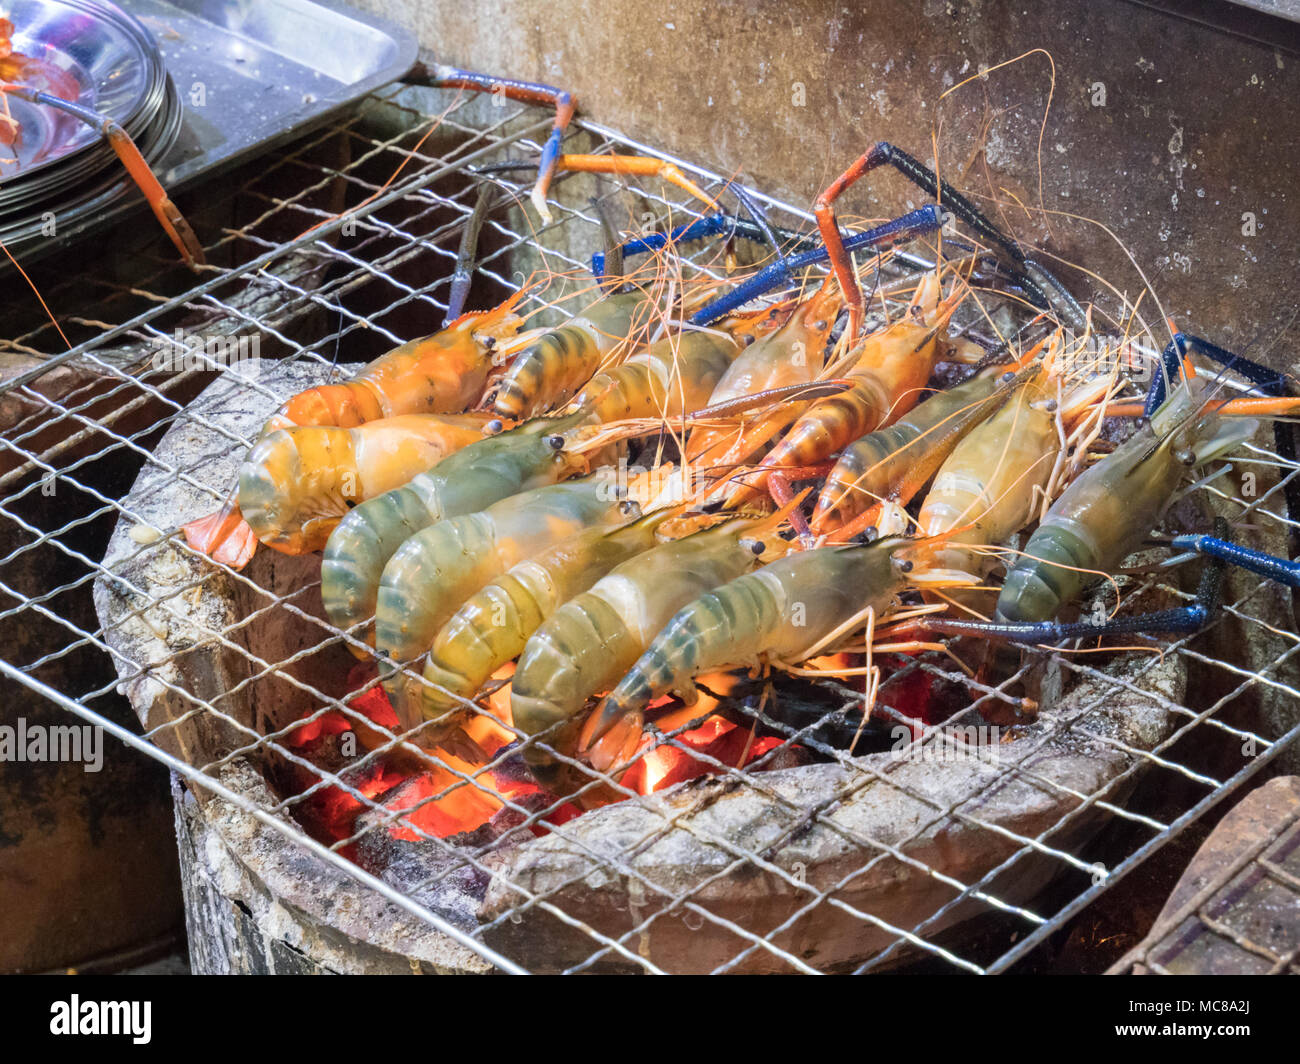 Prawns Cooking On A Charcoal Grill On A Street Food Stall In Bangkok Thailanad Stock Photo Alamy